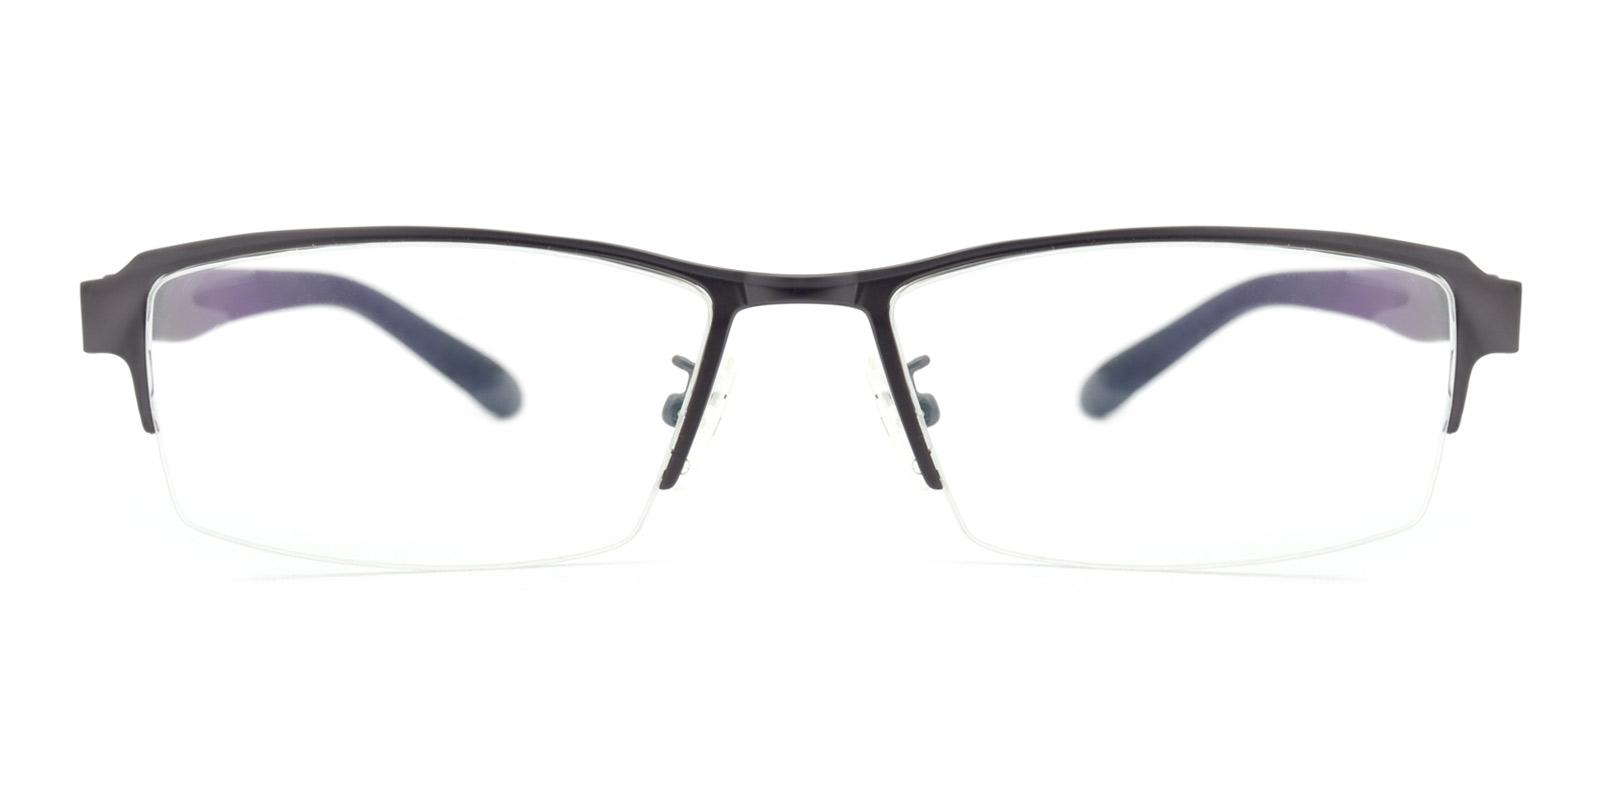 Lewis-Gun-Rectangle-TR-Eyeglasses-additional2